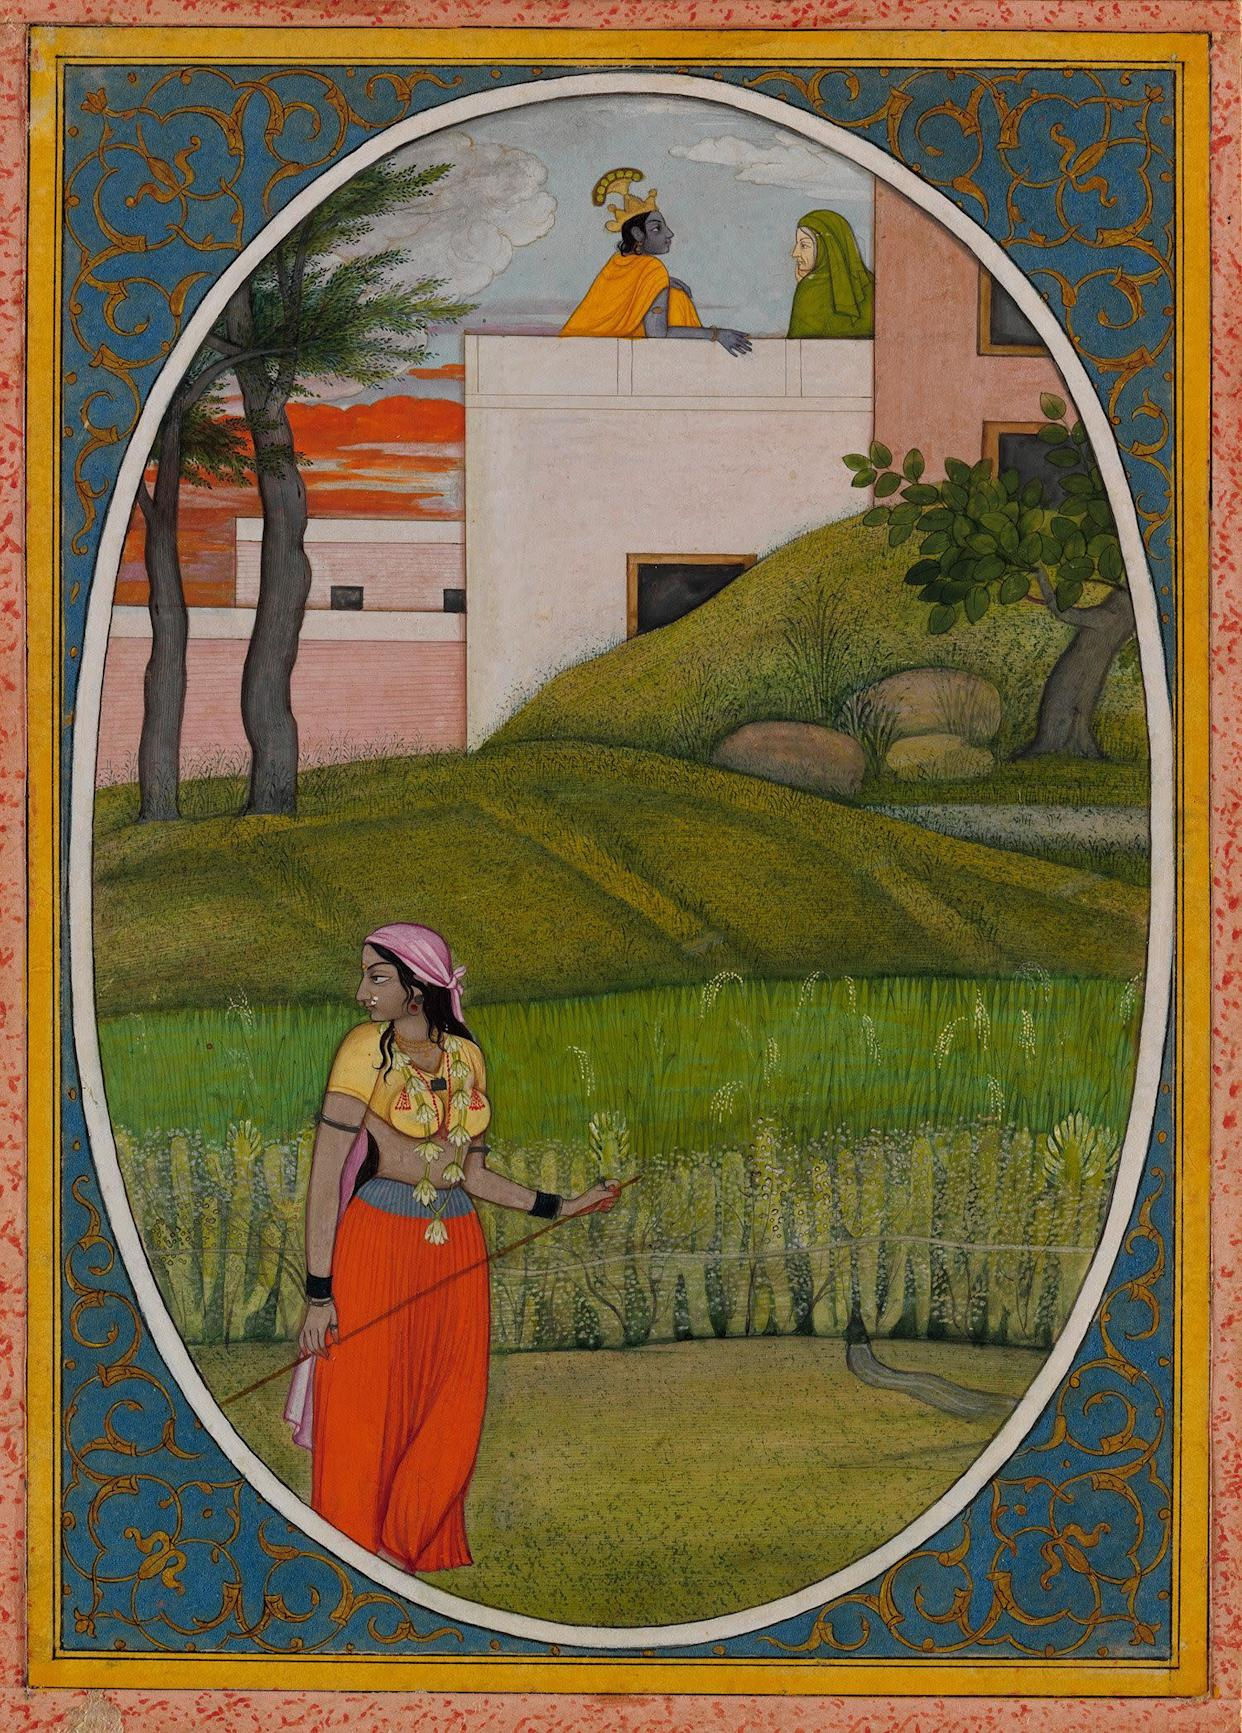 """""""The Village Beauty.""""Probably painted by the artist Fattu (active ca. 1770–1820)Illustrated folio from the dispersed """"Kangra Bihari"""" SatSai (Seven Hundred Verses)Punjab Hills, kingdom of Kangra, ca. 1785.Opaque watercolor, ink, and gold on paper; narrowyellow and white borders with black inner rules; darkblue spandrels decorated with gold arabesque;painting 7 3/8 x 5 3/16 in.Promised Gift of the Kronos Collections, 2015."""